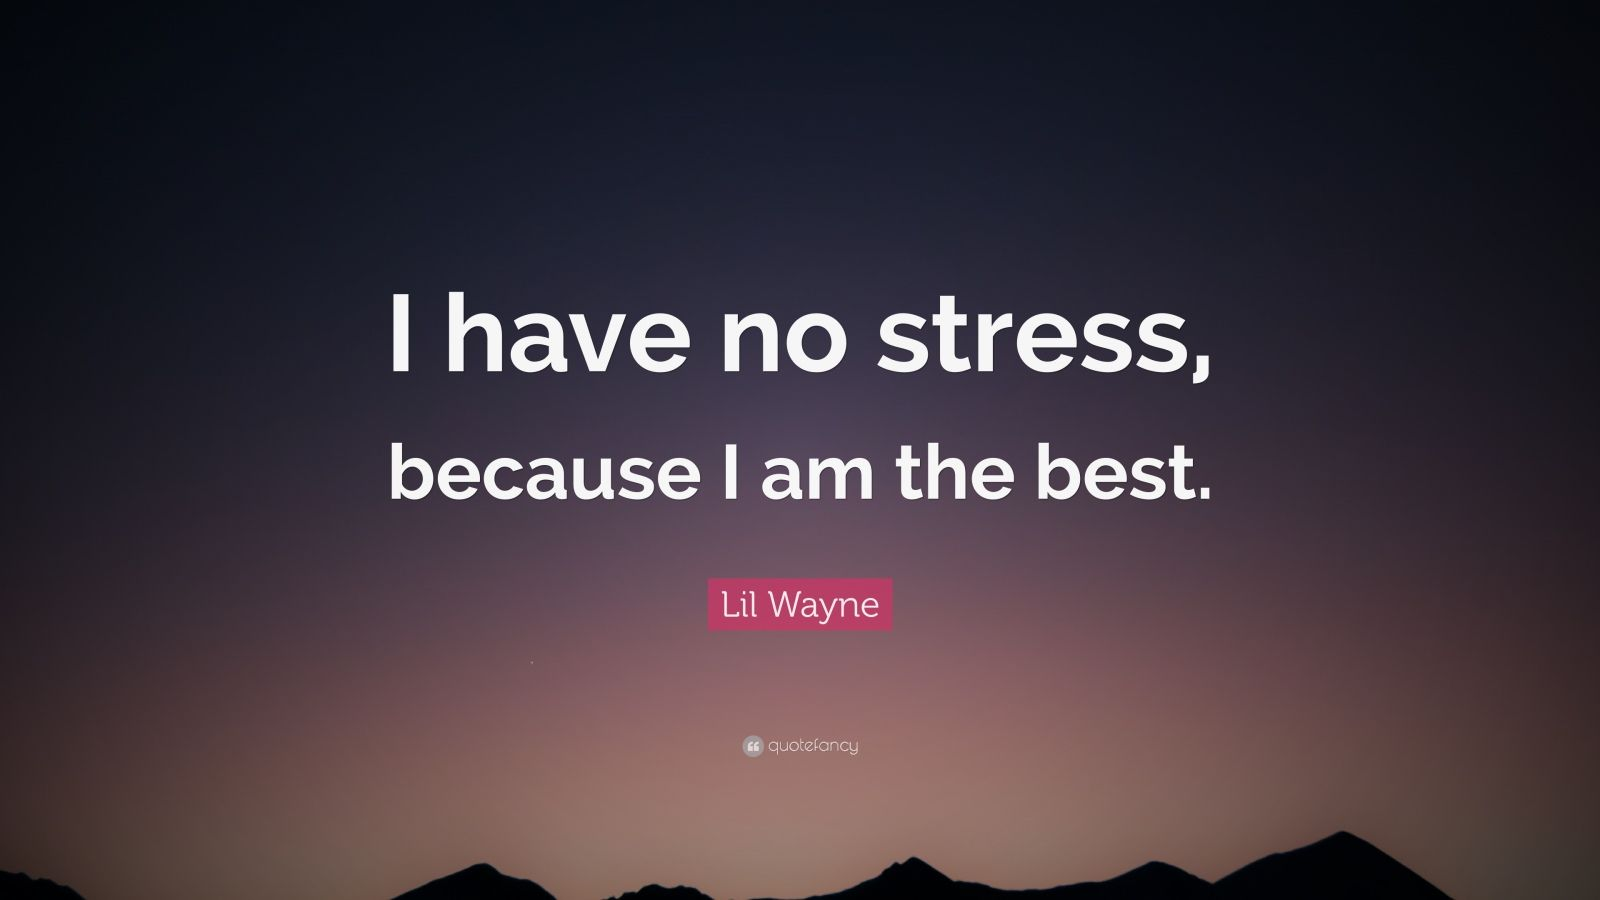 Motivational Football Quotes Wallpaper Lil Wayne Quote I Have No Stress Because I Am The Best